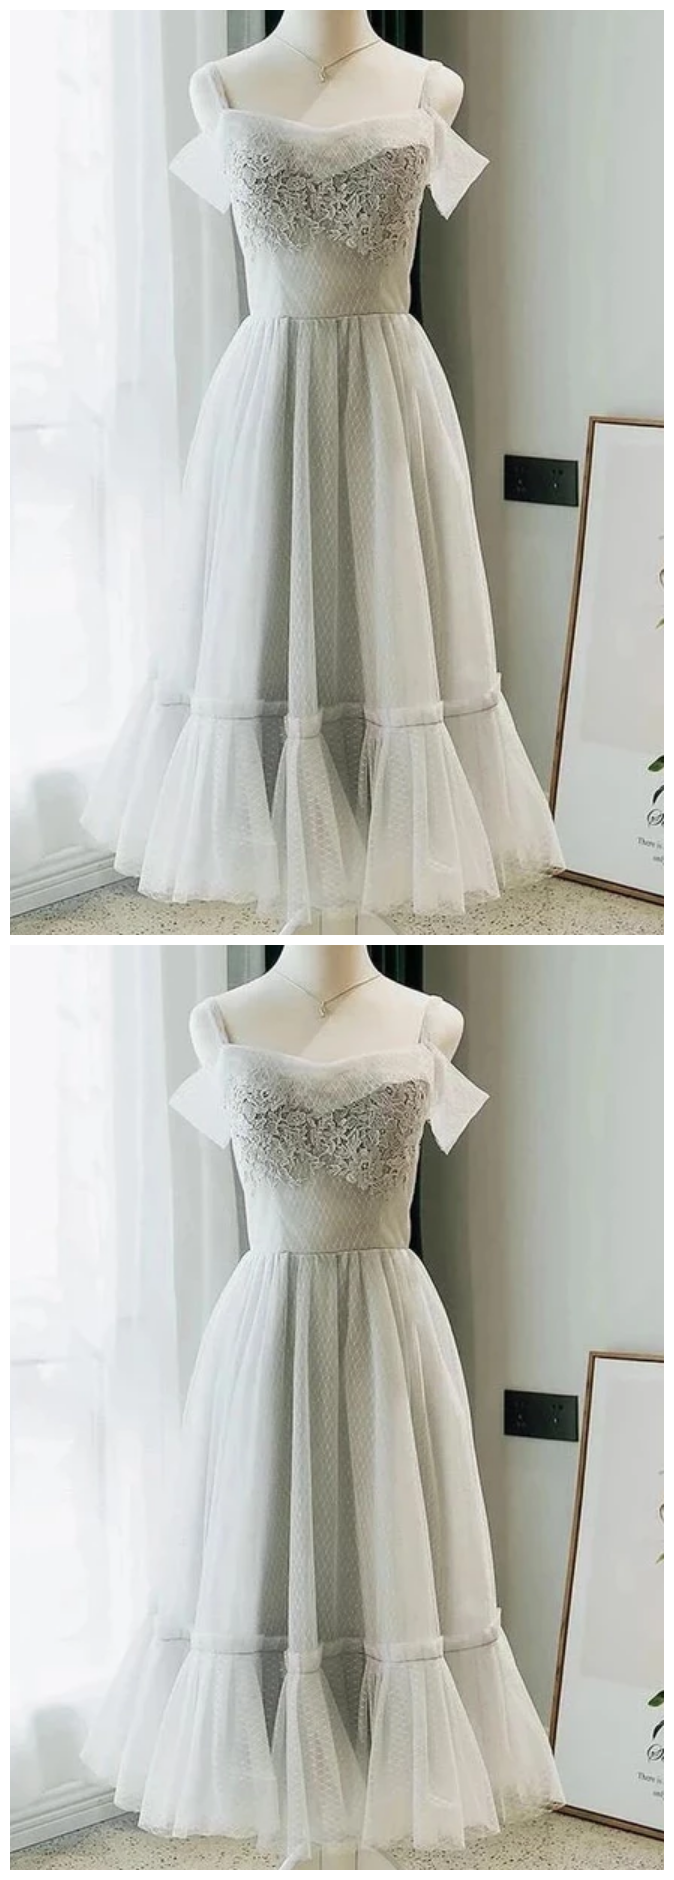 A Line Tea Length Off the Shoulder Homecoming Dresses with Lace Appliques